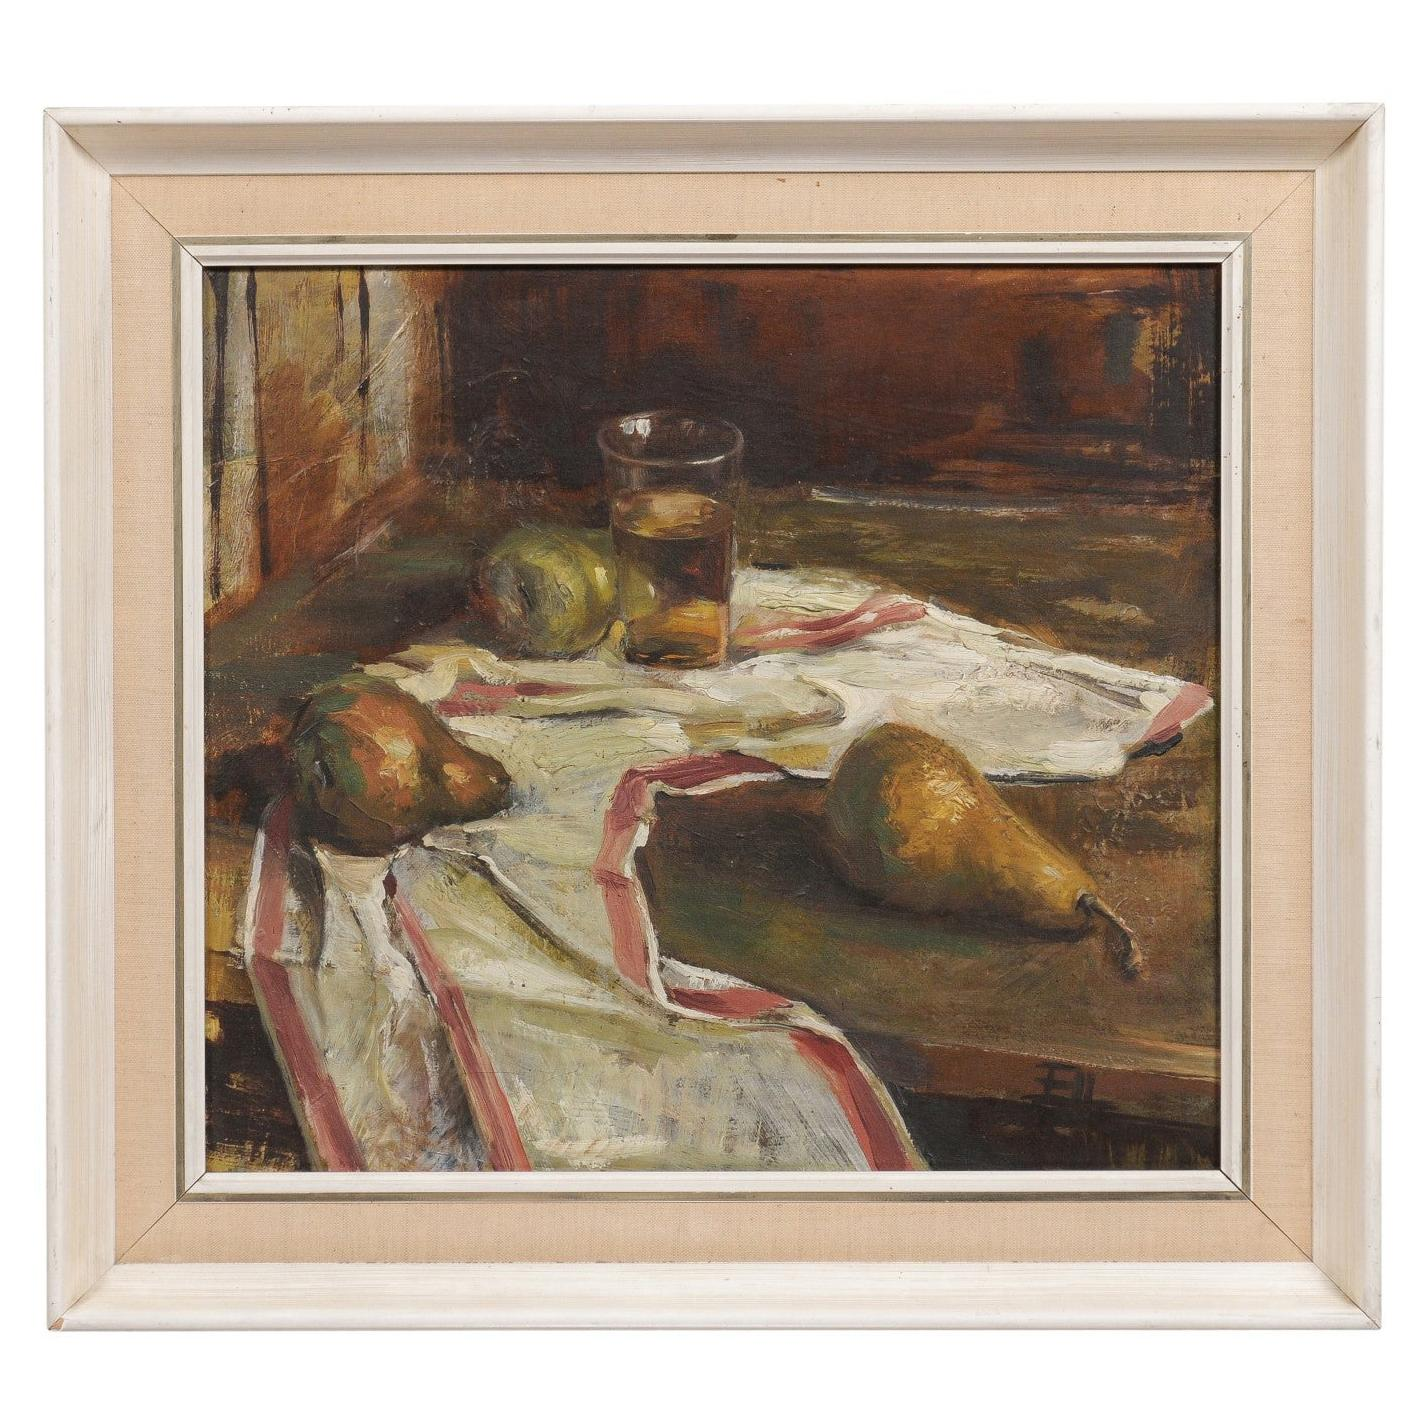 English 20th Century Framed Oil on Canvas Still-Life Painting Depicting Fruits